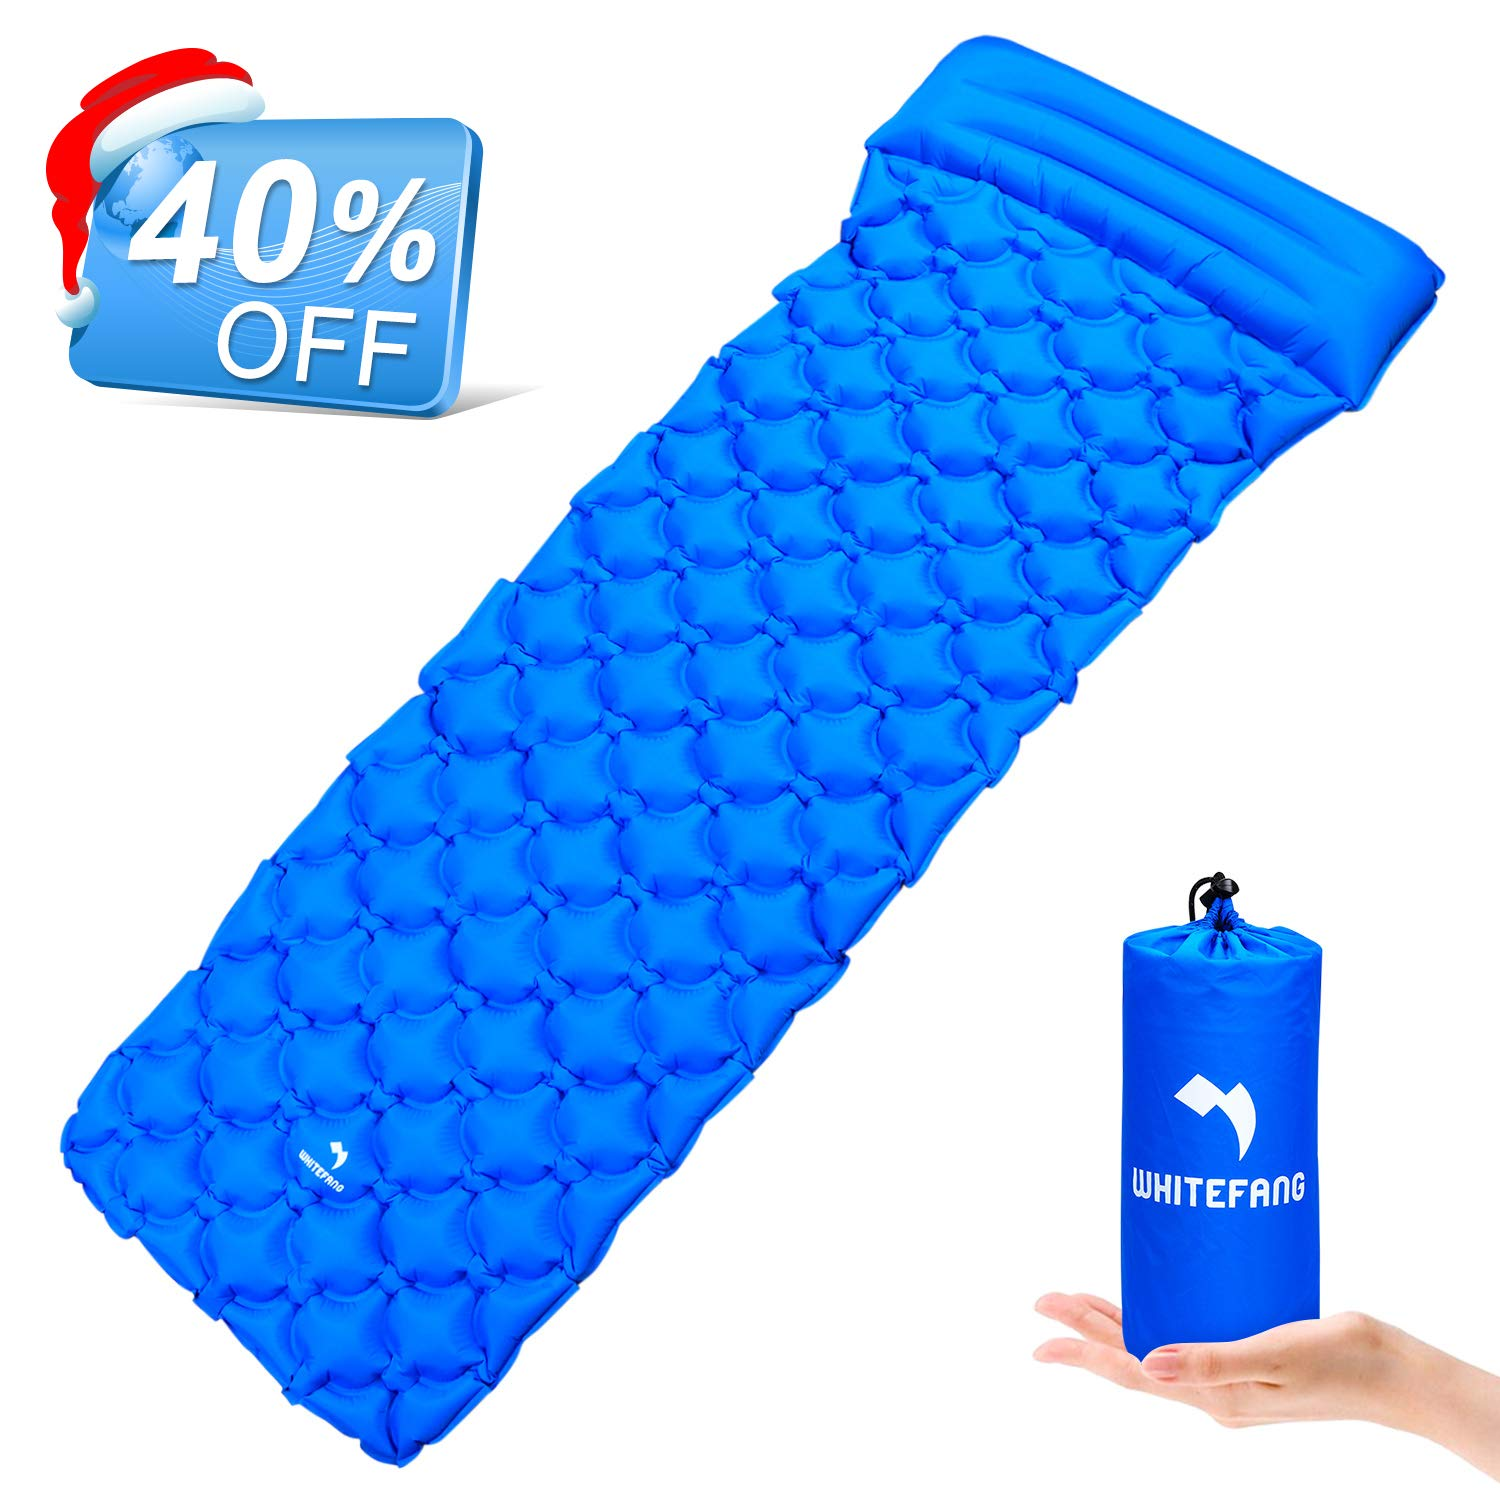 Inflating Camping Mattress with Pillow Portable Waterproof Mat Gear Lightweight Pad for Backpacking Bag Hammock Outdoor Whitefang Ultralight Sleeping Pad Hiking